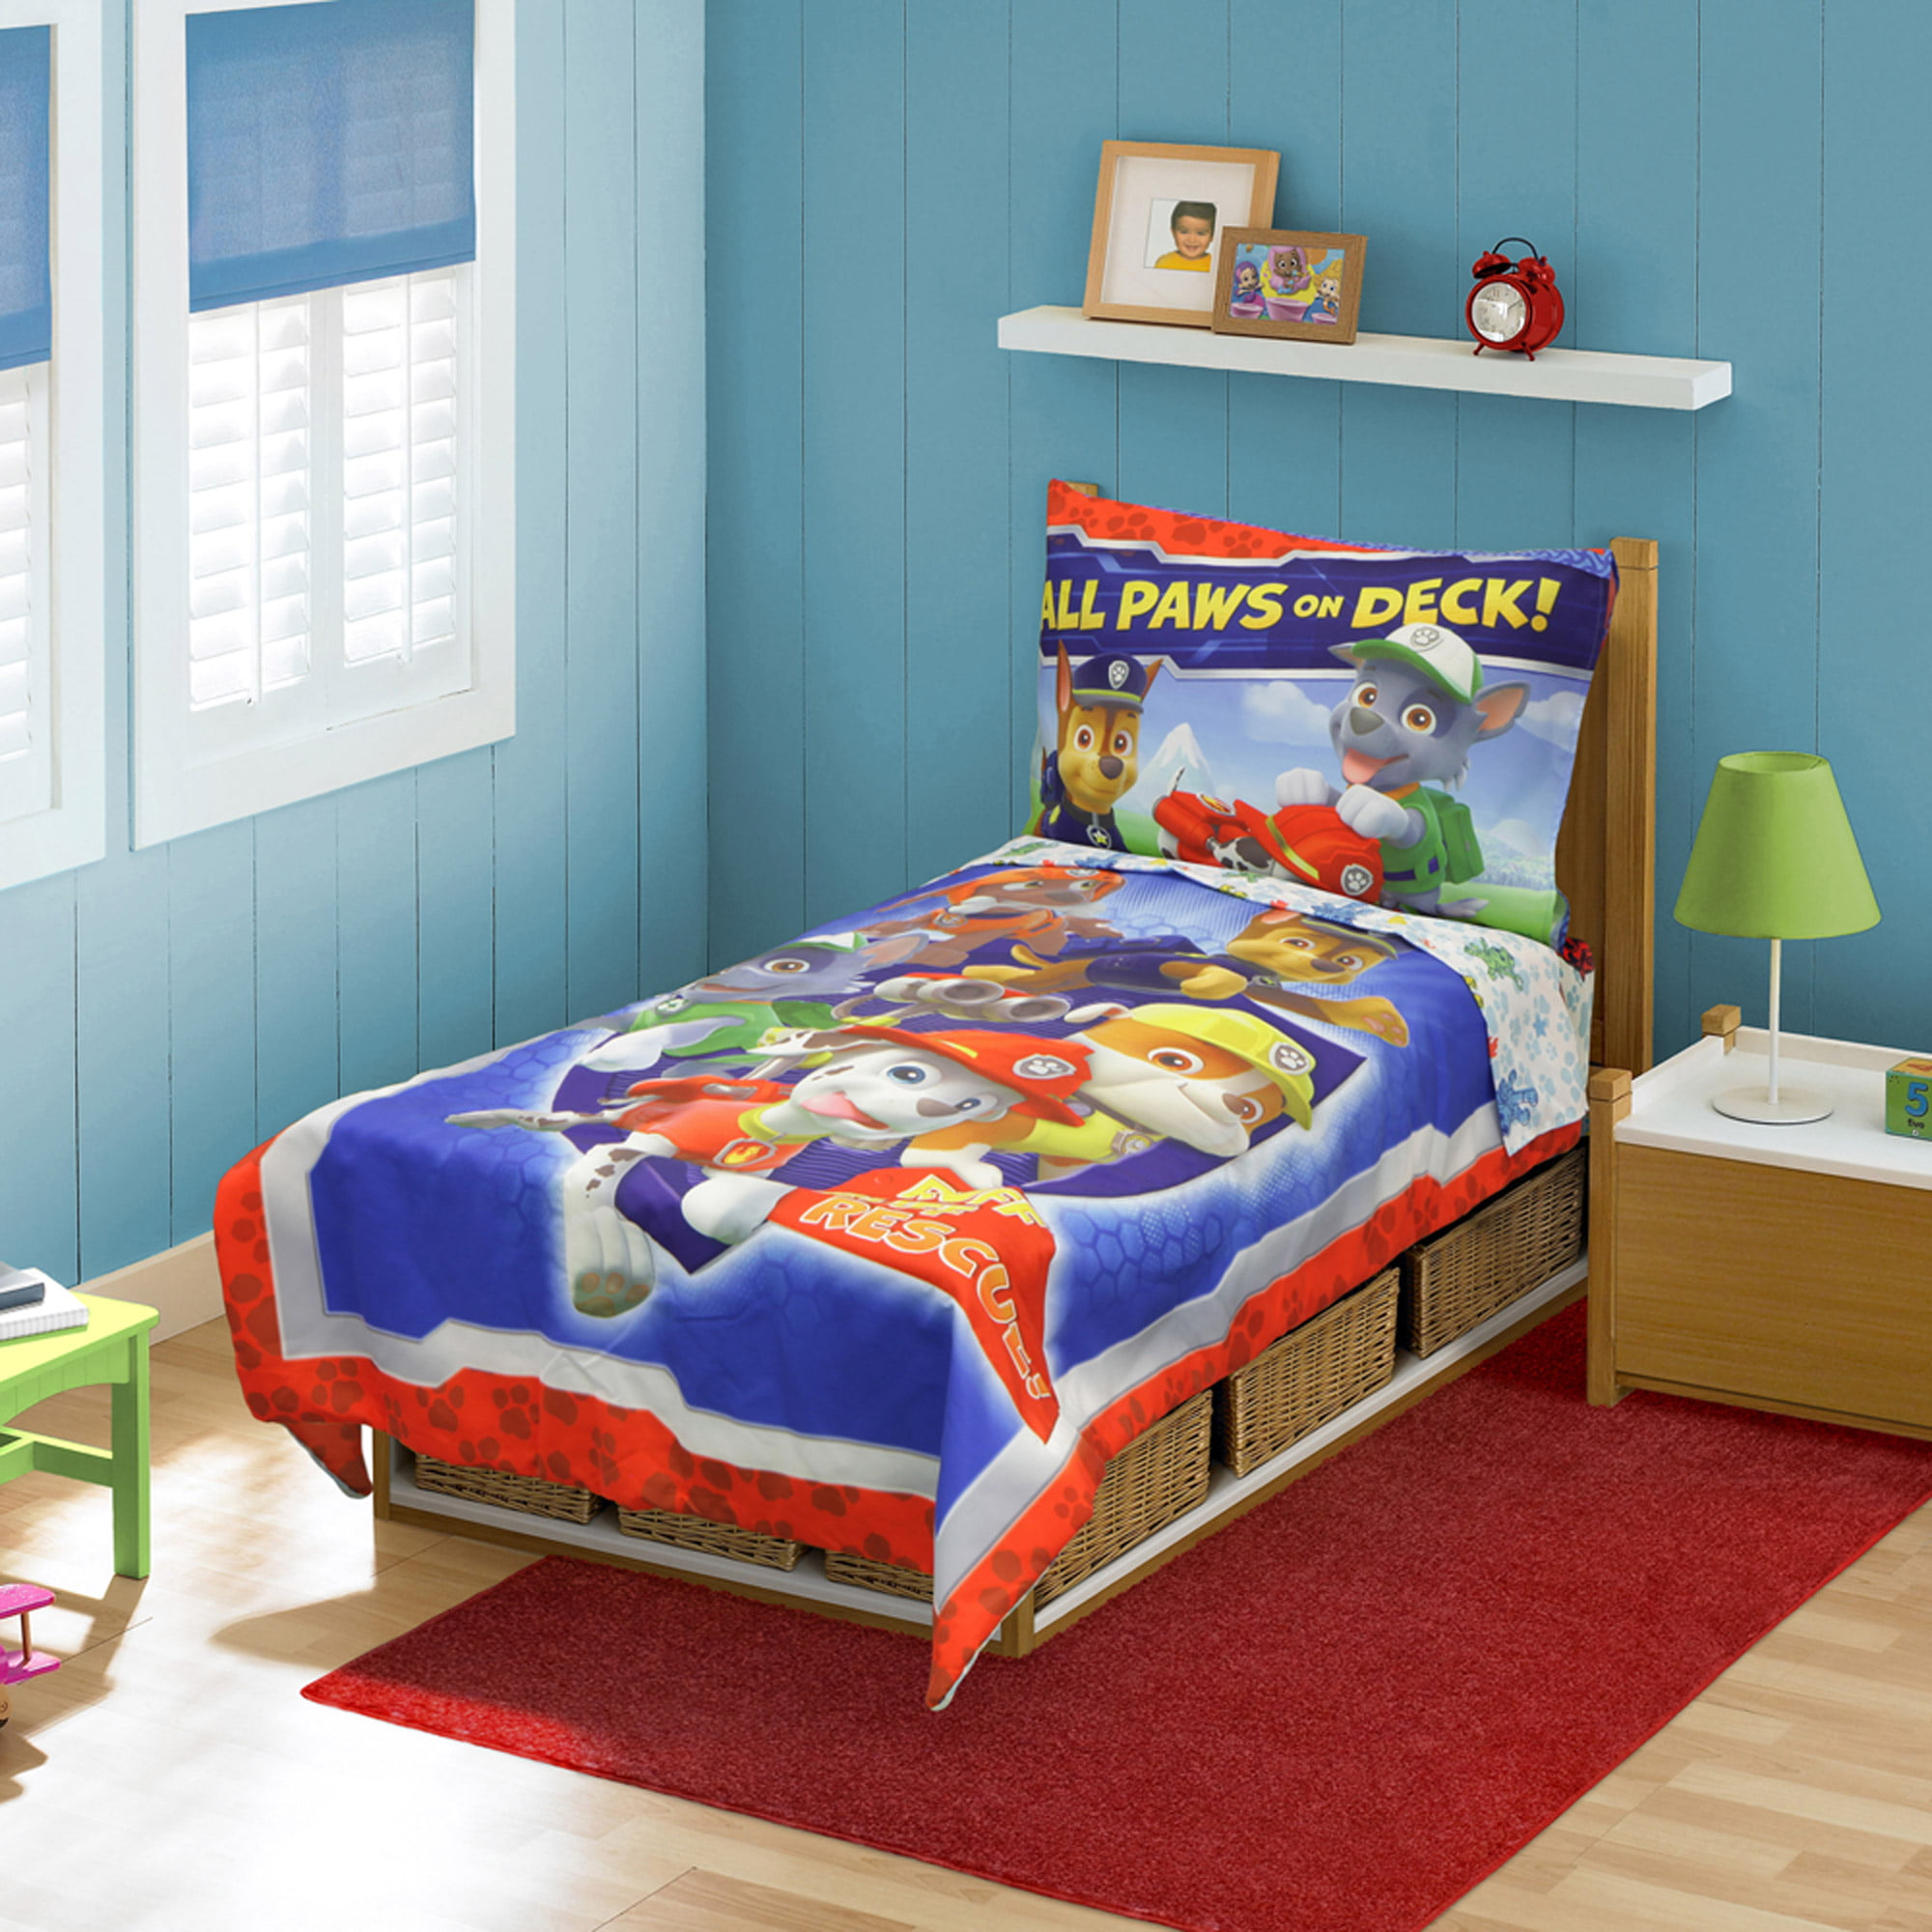 Nickelodeon Paw Patrol Ruff Ruff Rescue 4 Piece Toddler Bed Set Walmart Com